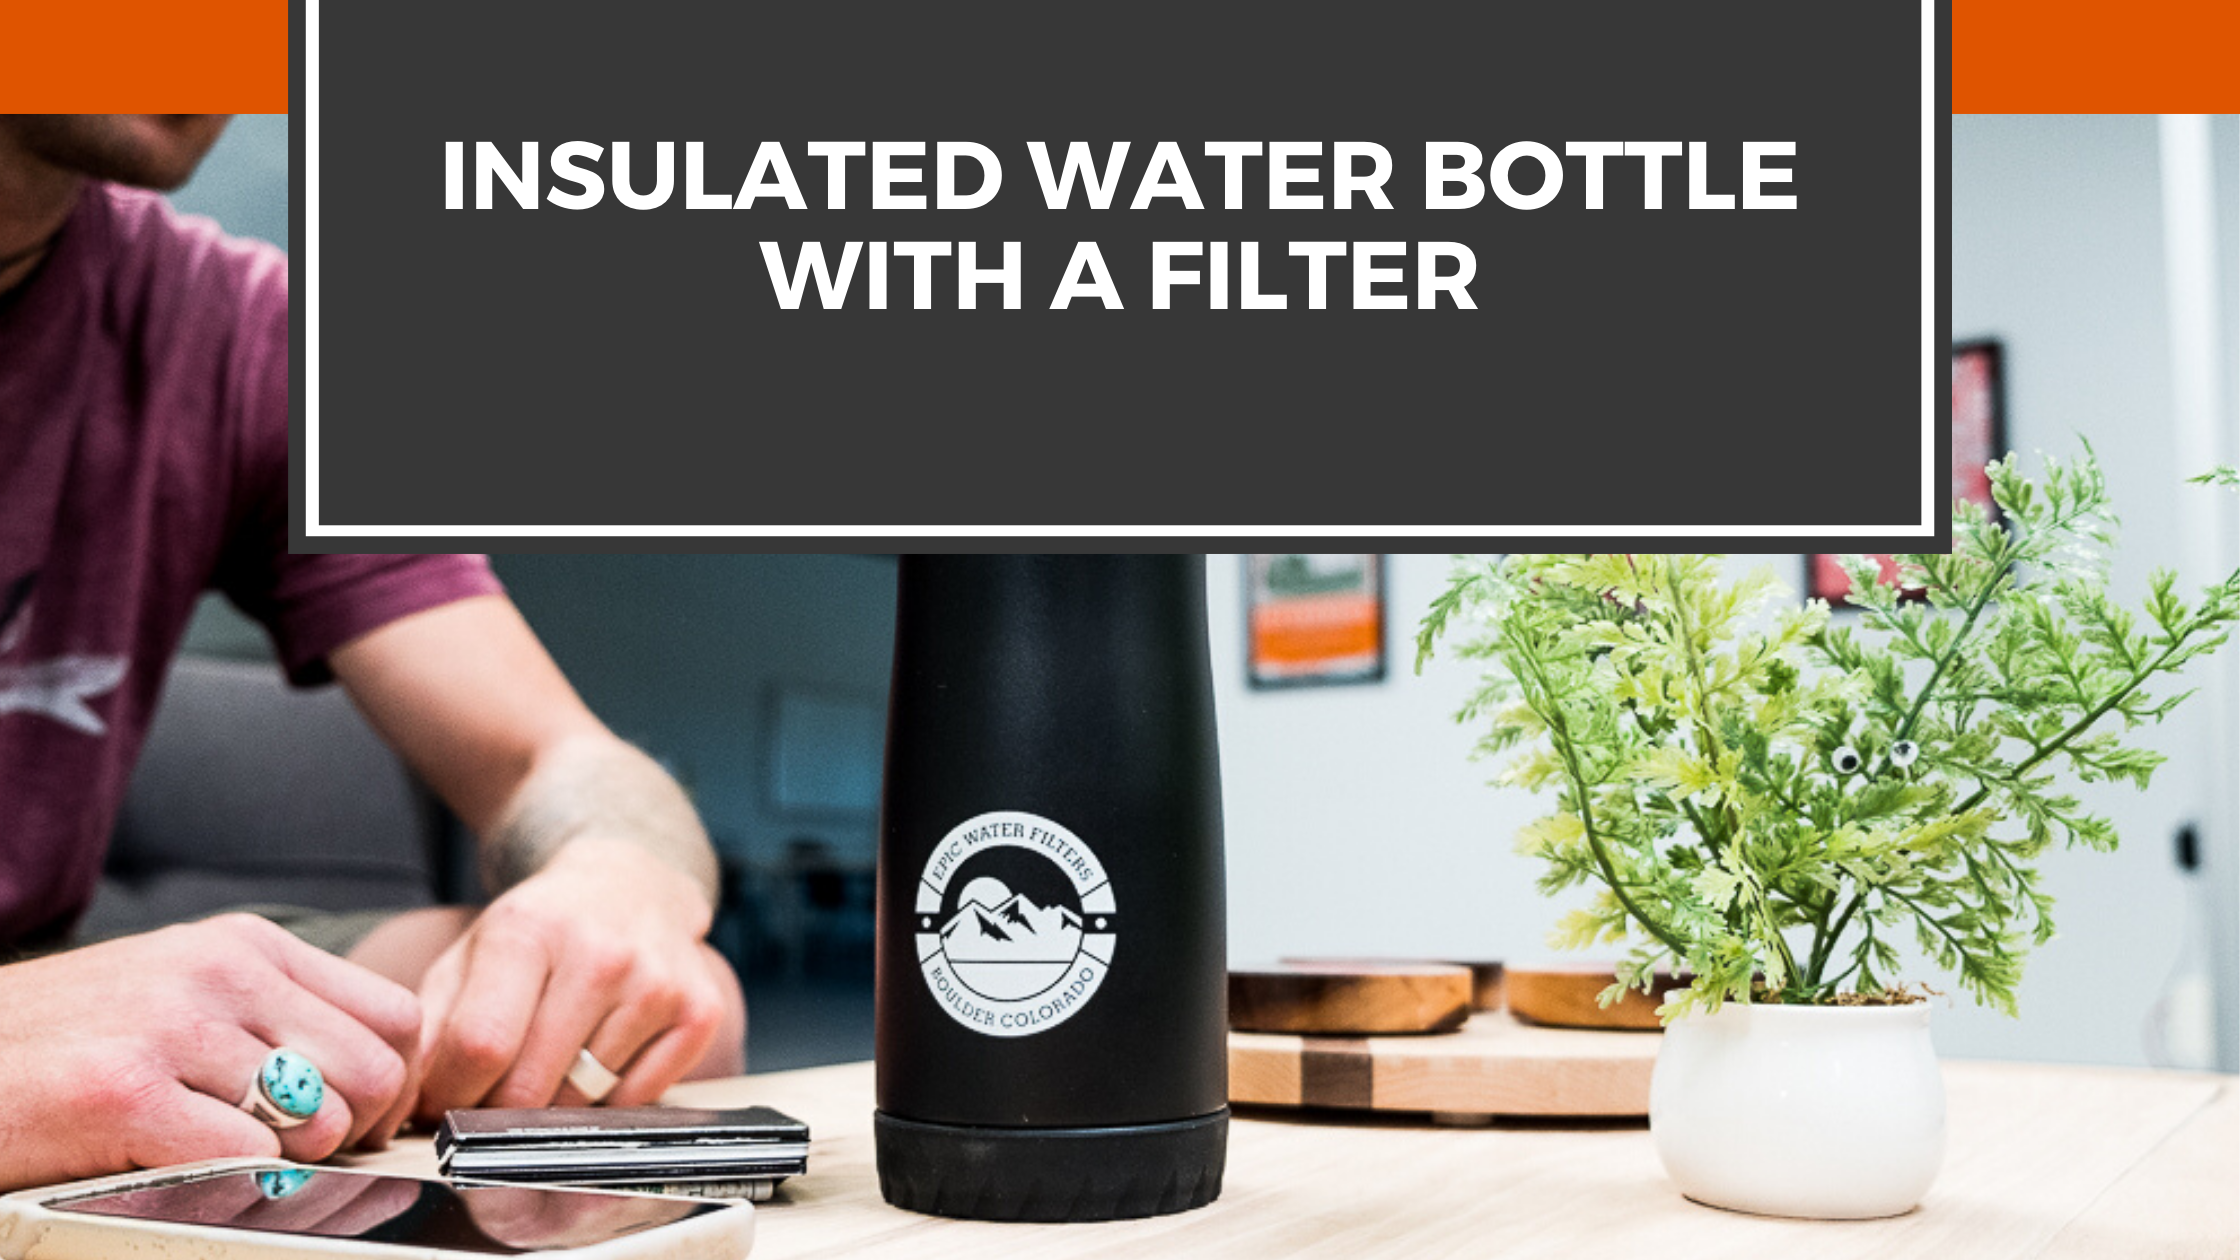 Insulated Water Bottle with a Filter